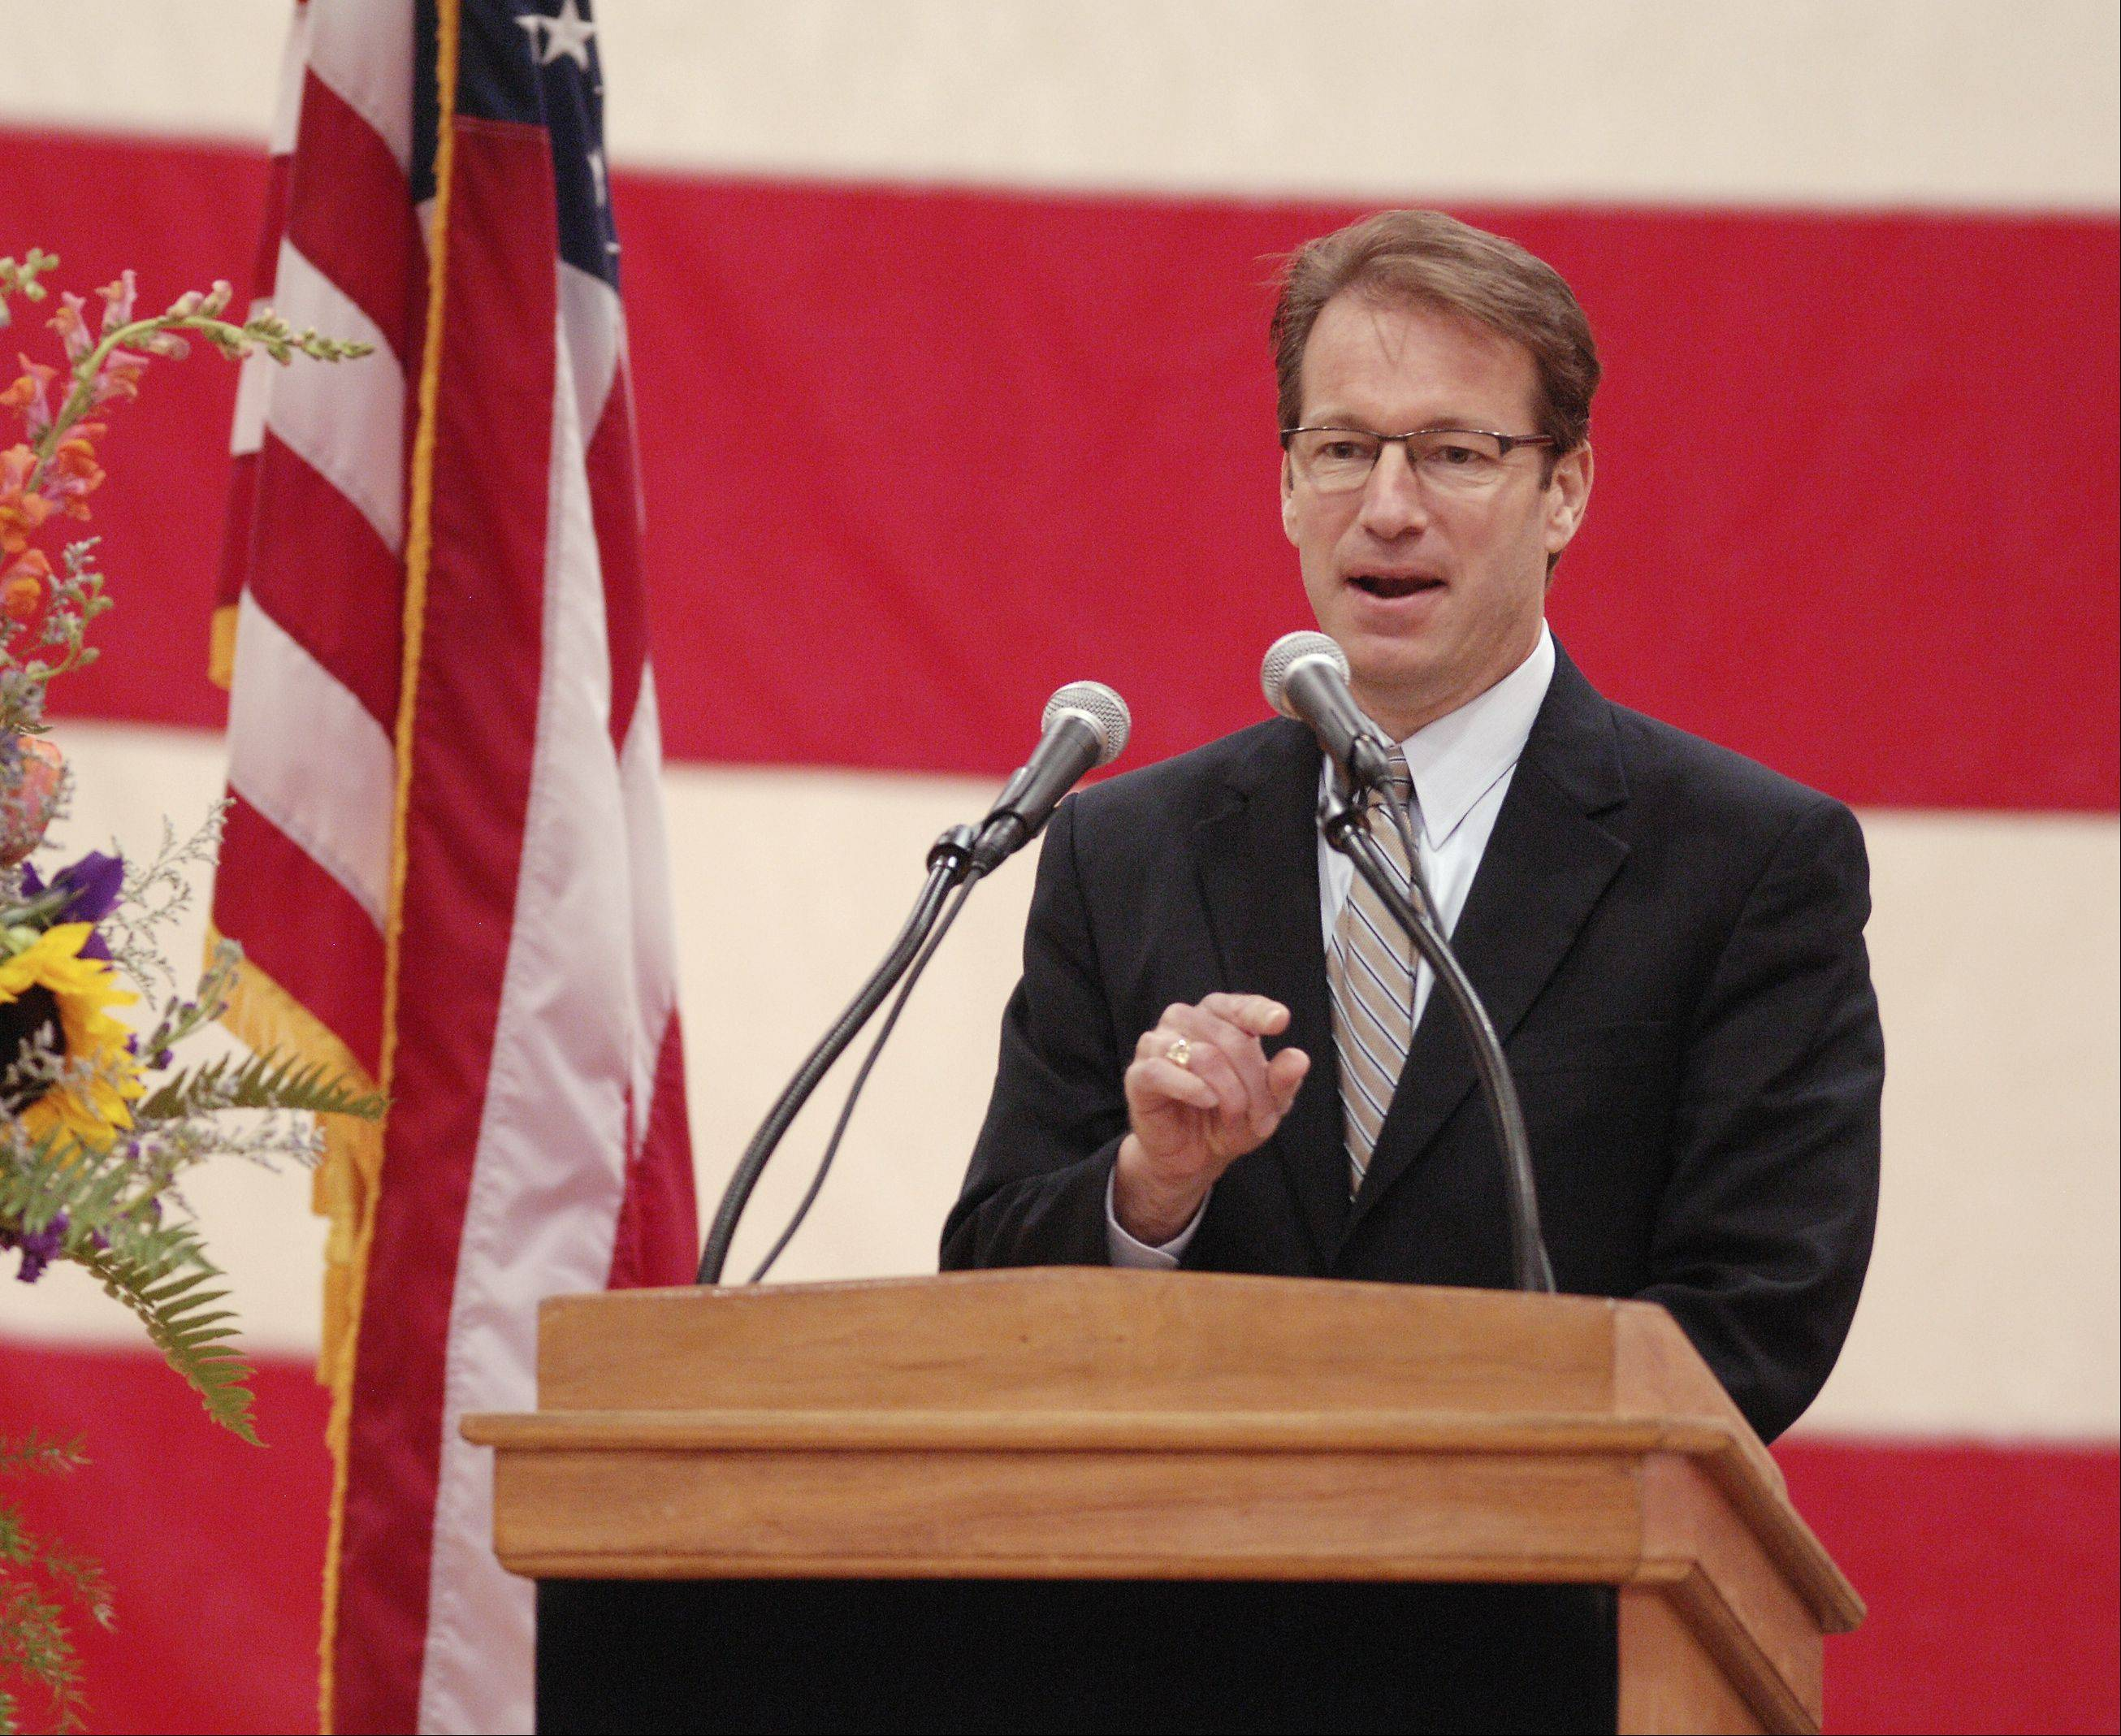 Congressman Peter Roskam speaks Sunday at the memorial service for West Chicago Mayor Mike Kwasman at West Chicago High School.